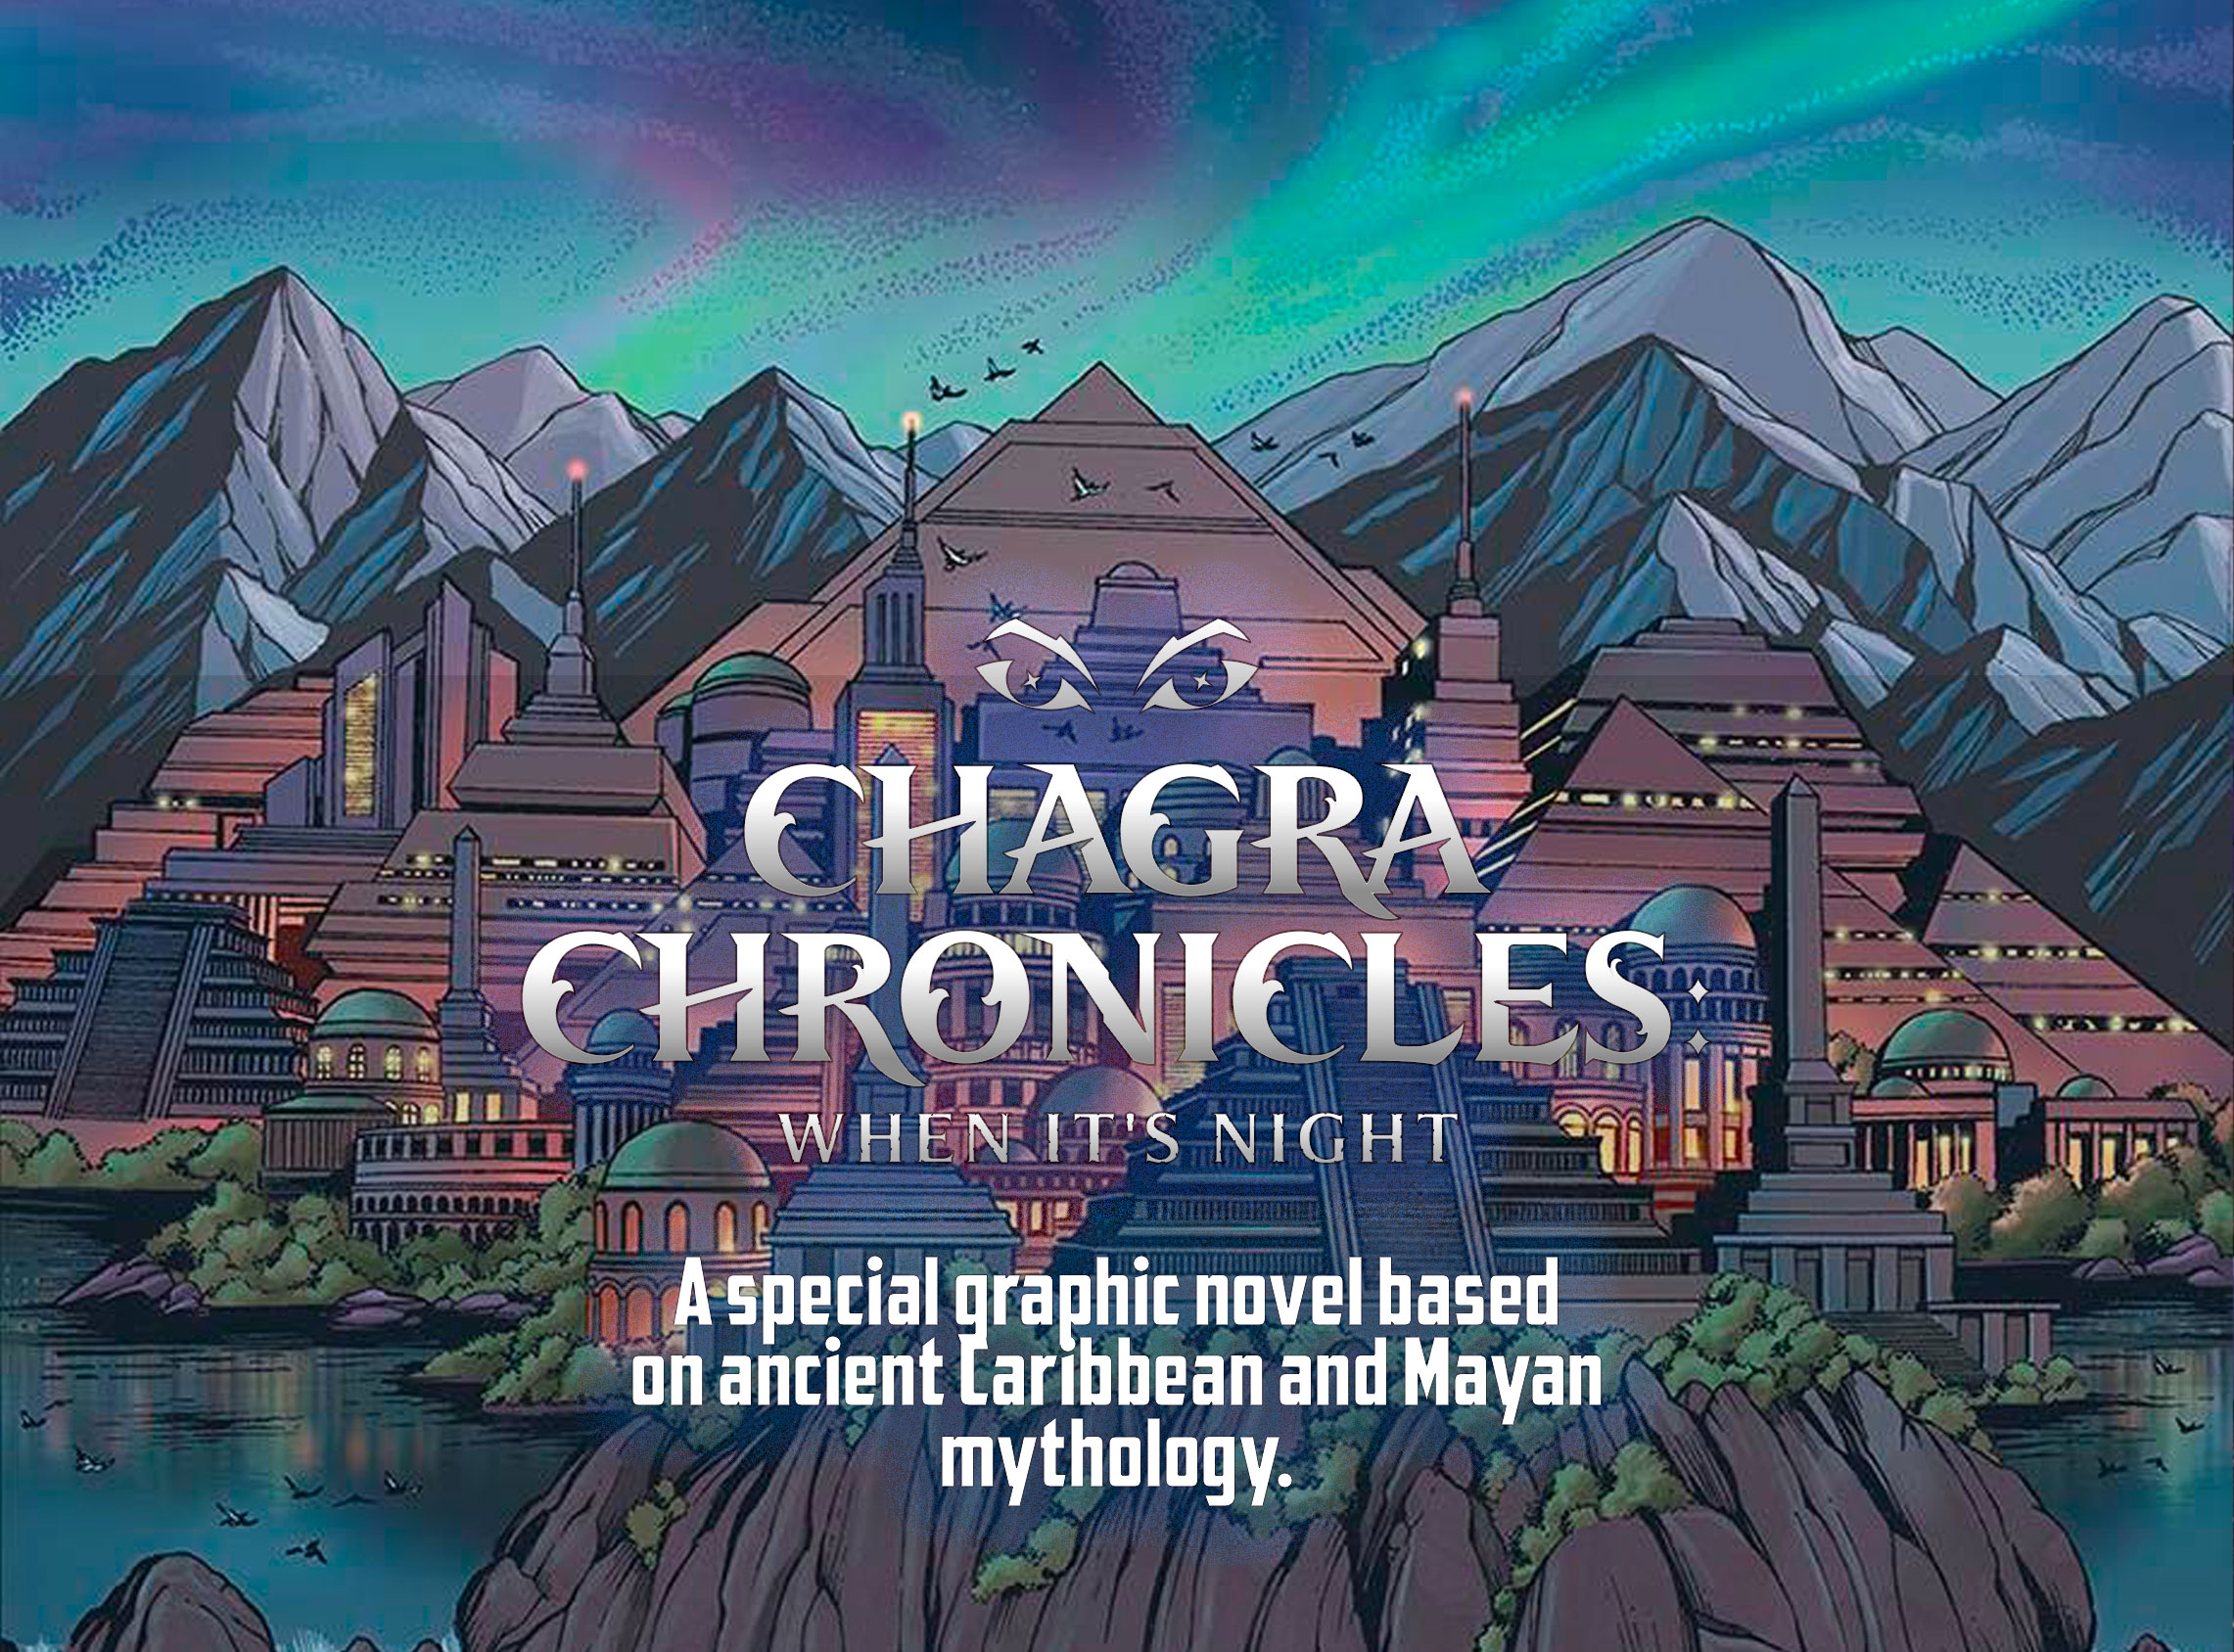 """Chagra Chronicles Graphic Novel promo image. It says, """"A special graphic novel baed on ancient Caribbean and Mayan mythology."""